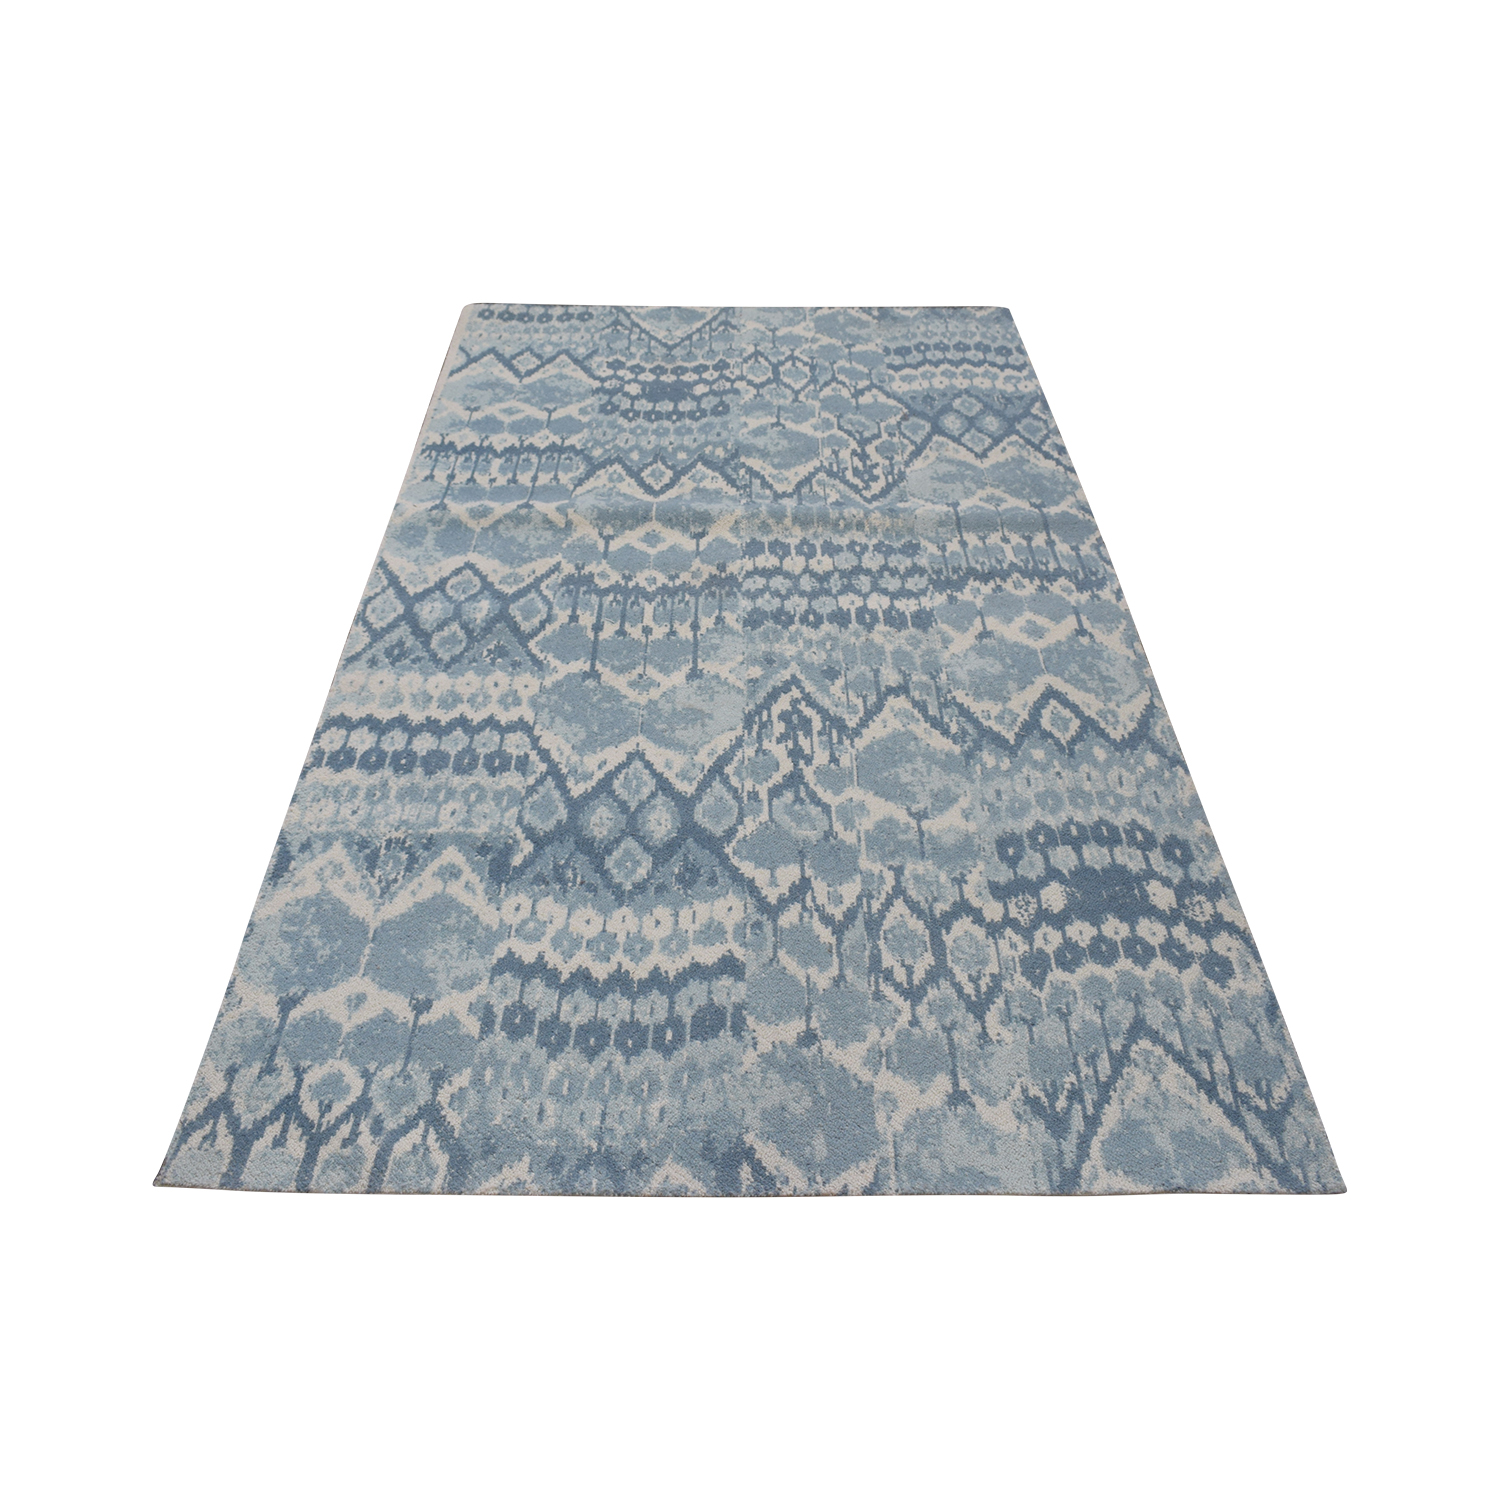 69 Off Obeetee Obeetee Handtufted Rug With Printed Ikat